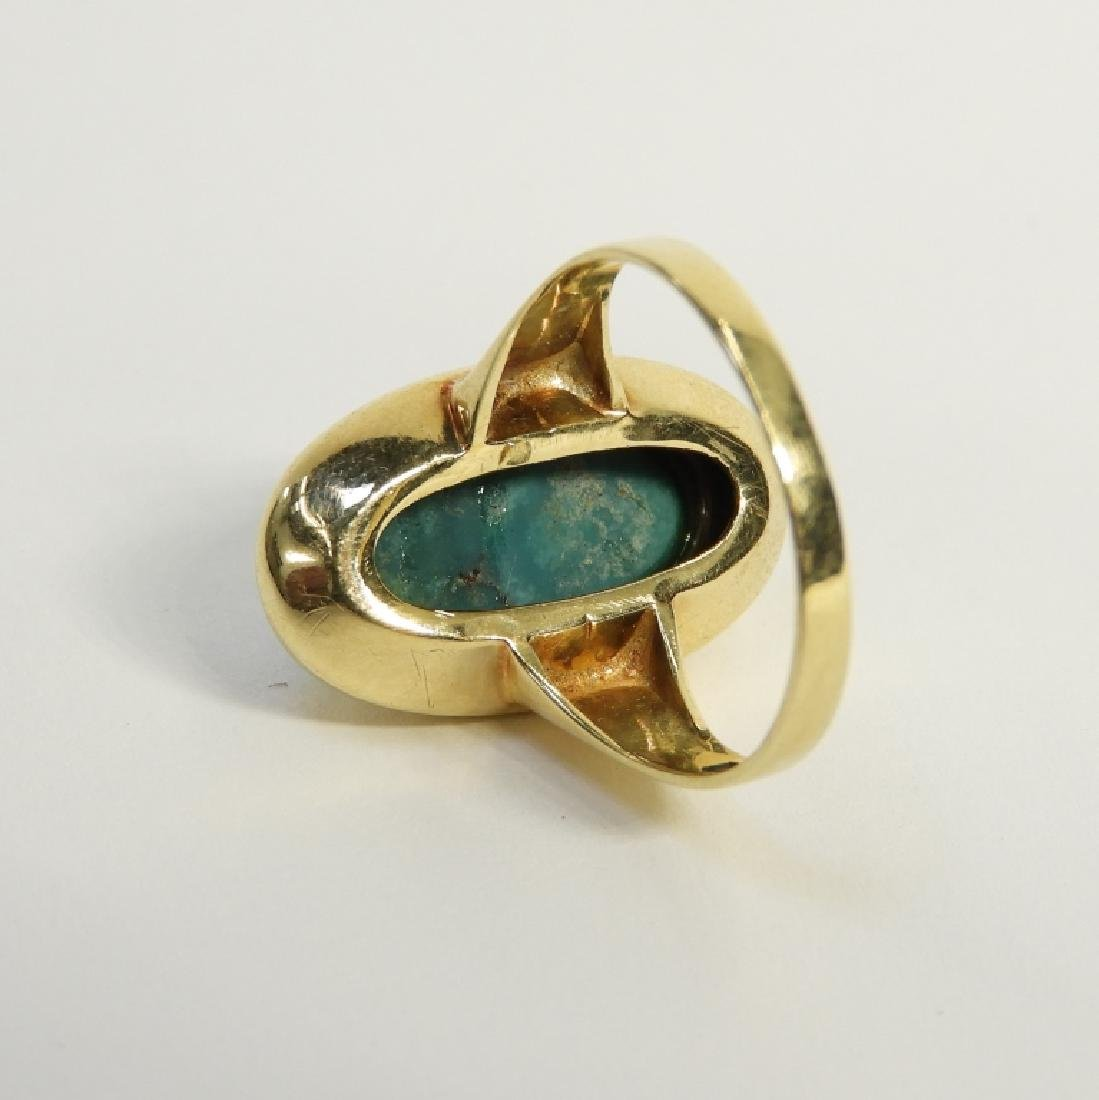 14K Yellow Gold & Turquoise Cabochon Stone Ring - 4